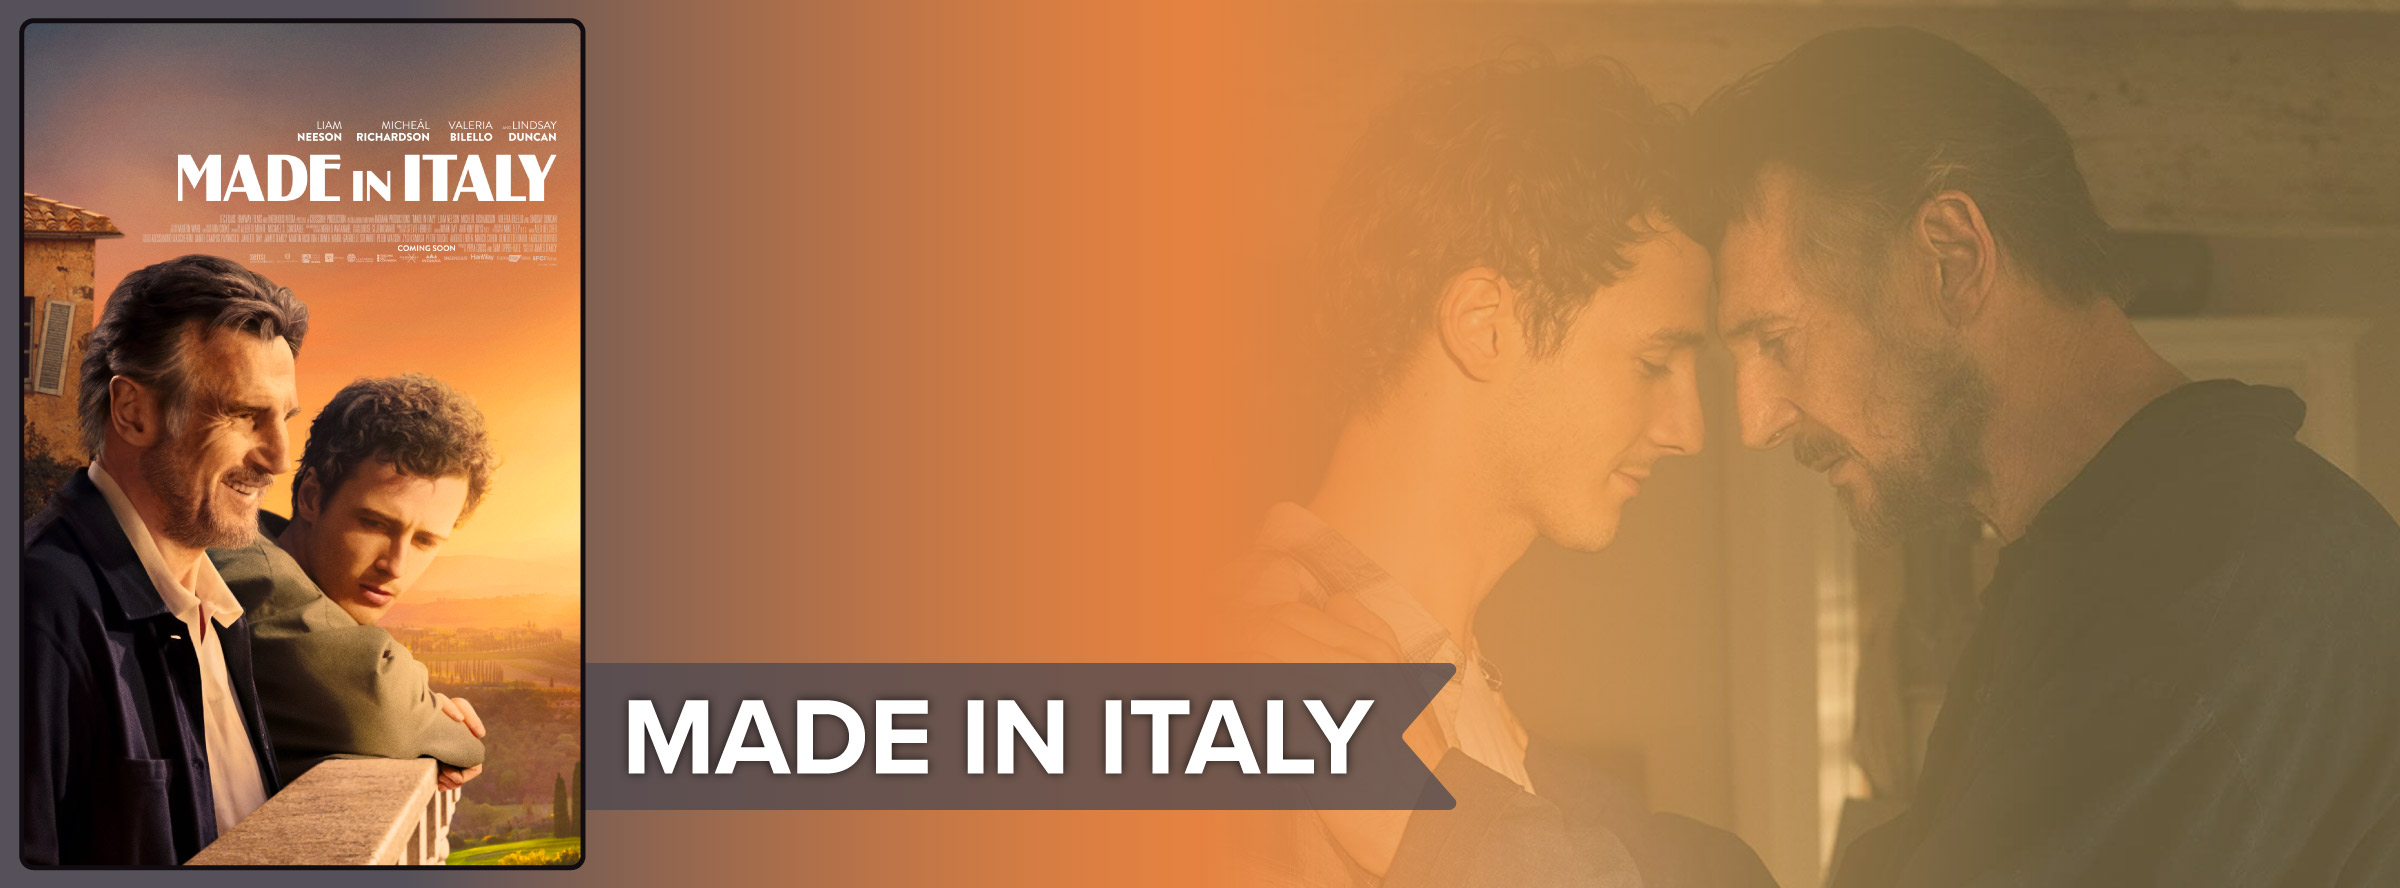 Slider Image for Made in Italy